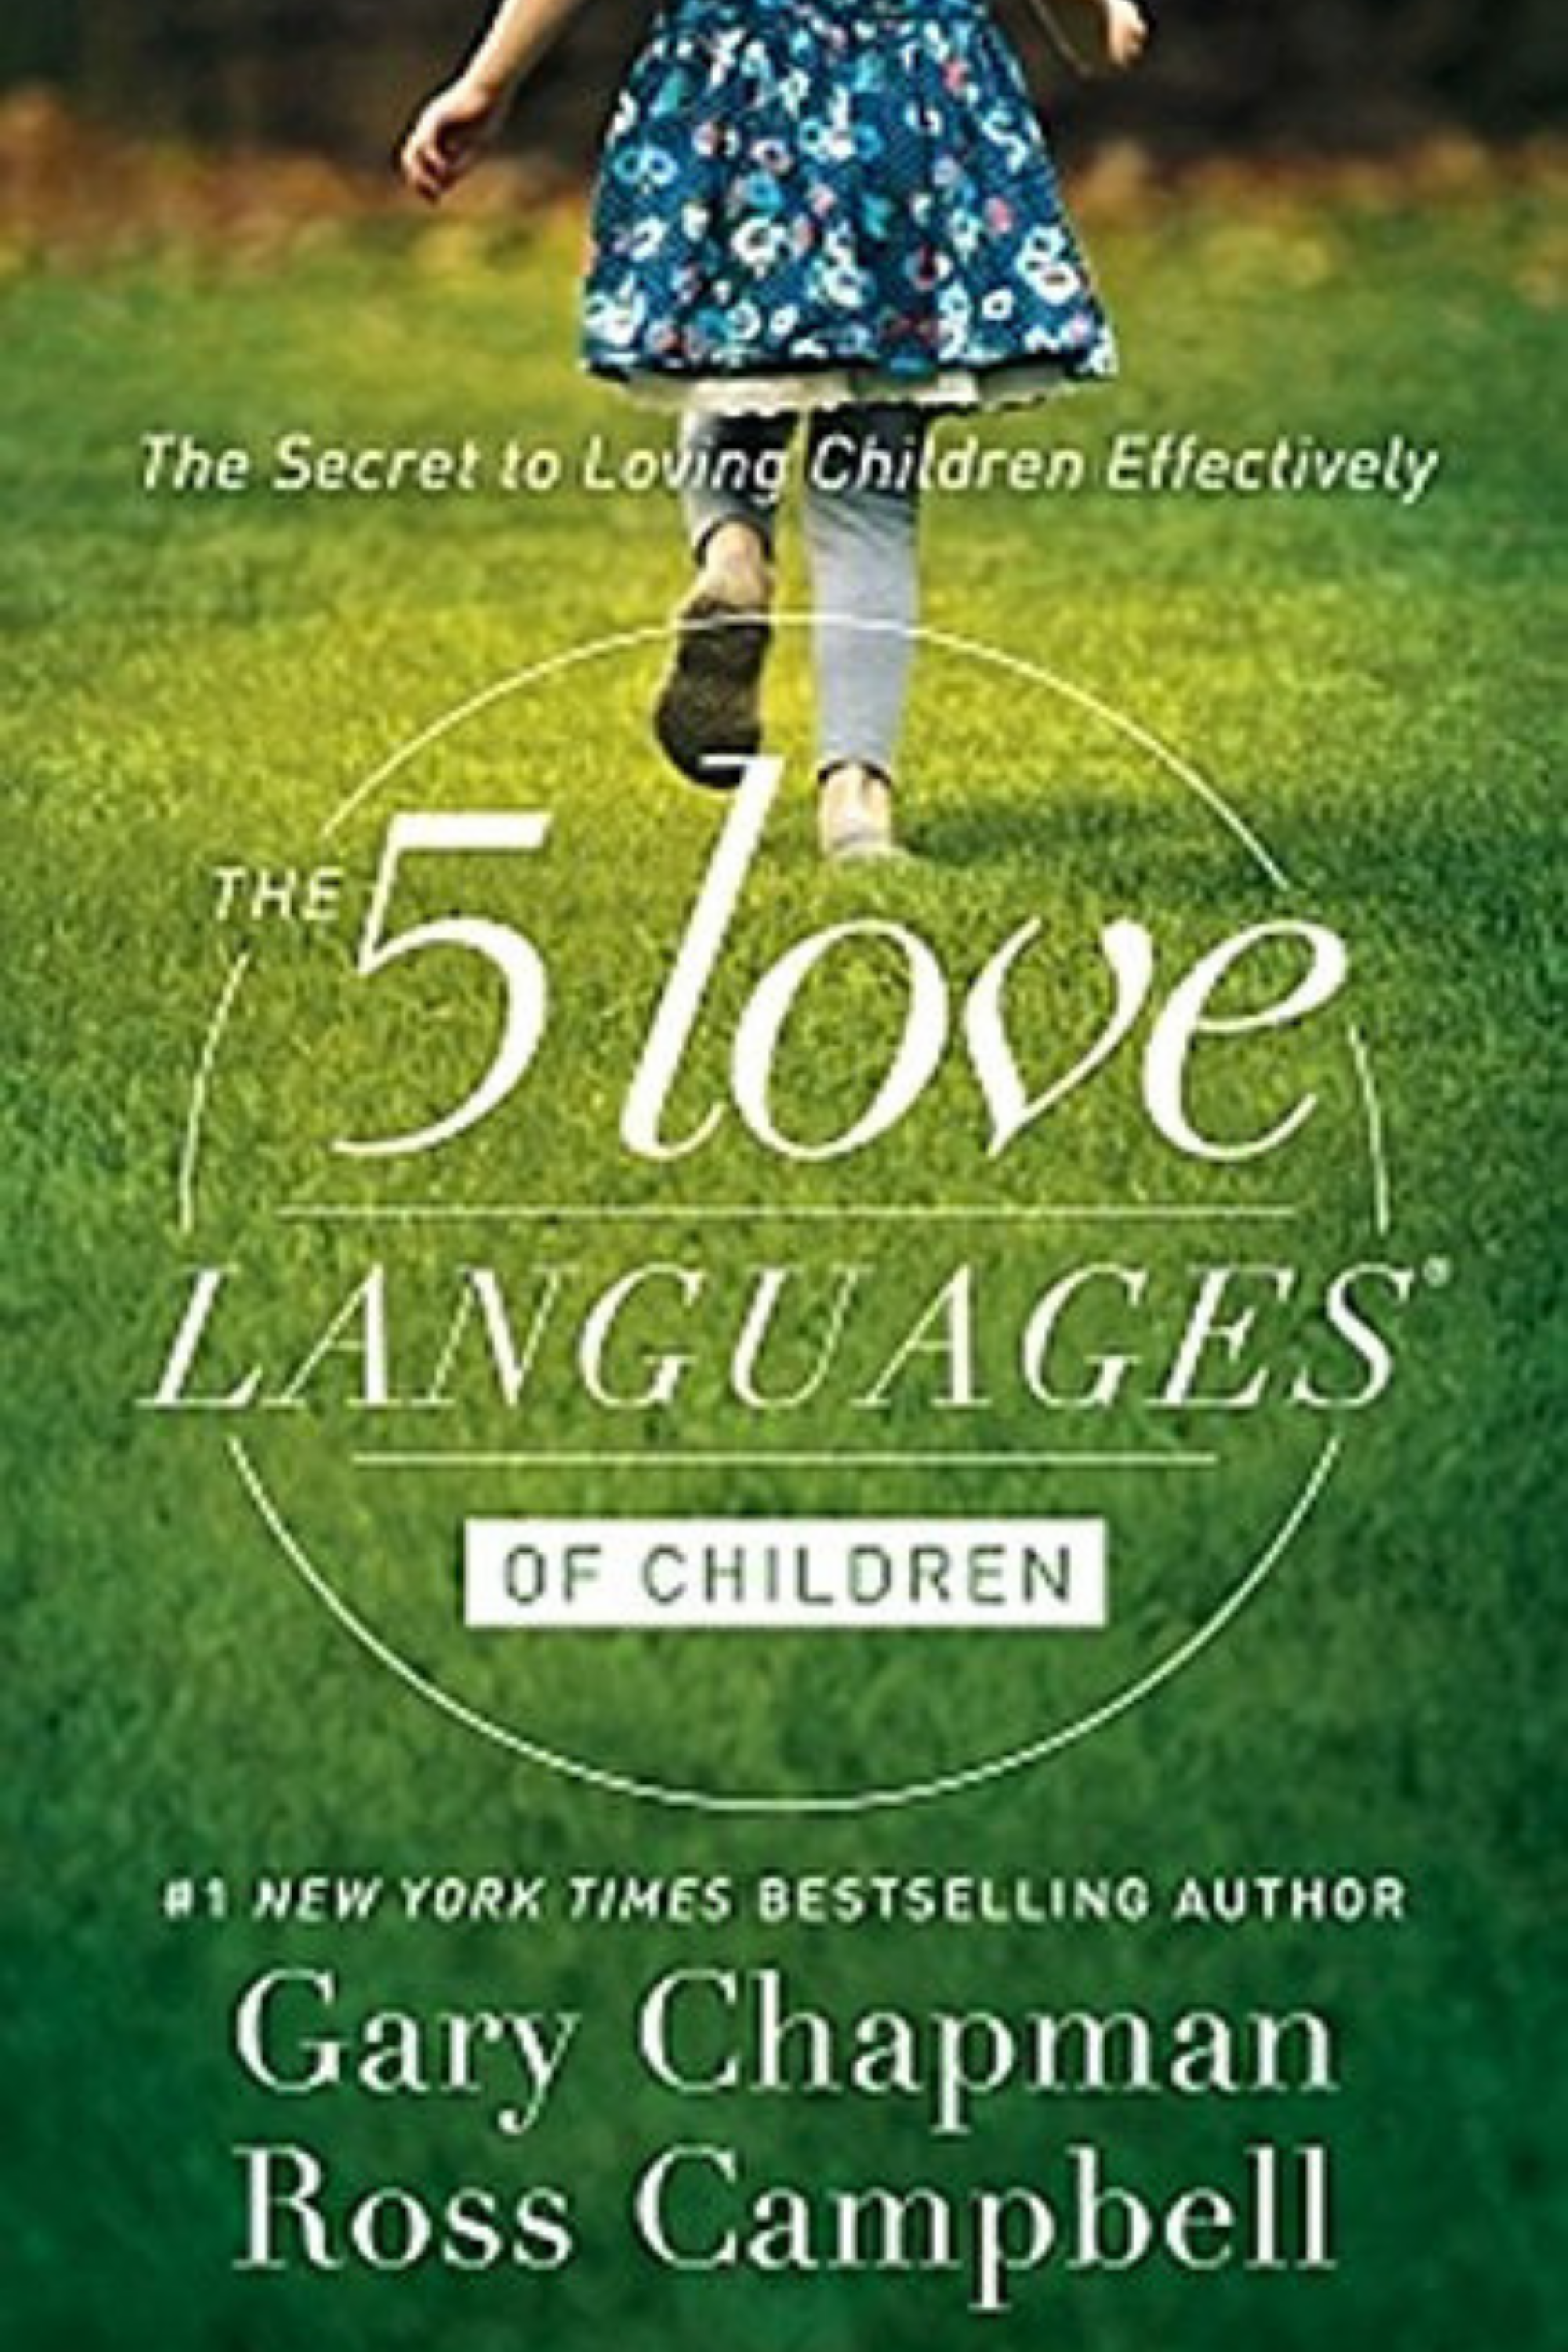 The 5 Love Languages of Children Gary Chapman Ross Campbell Courtney Elmer.png